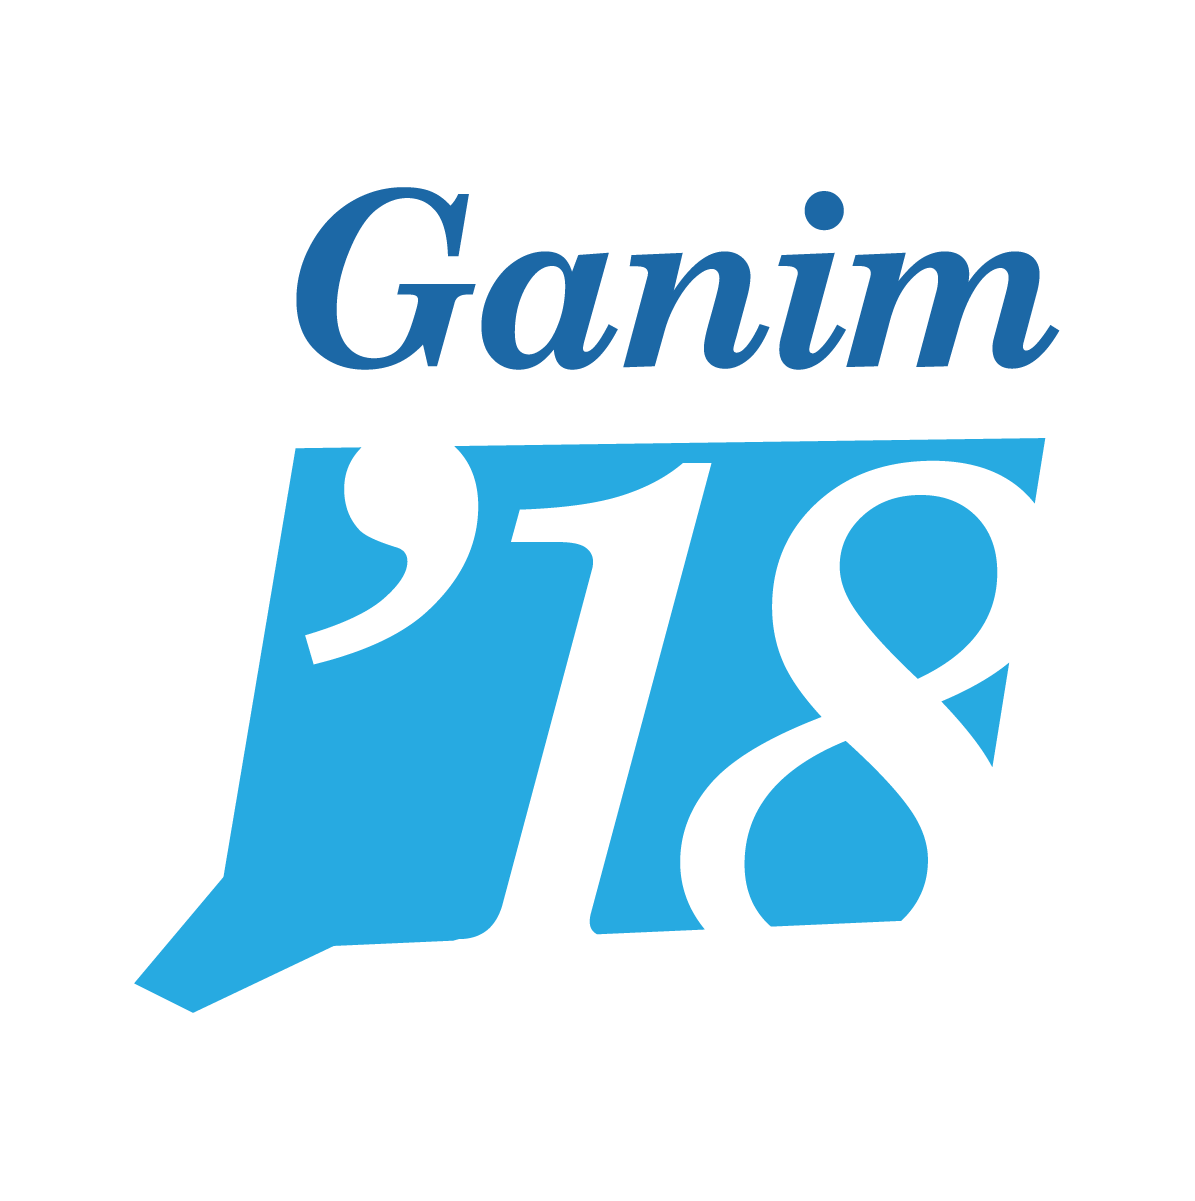 Ganim Applauds Channel WFSB And CT Realtors Postponement Of Debates Until Secretary Of The State Certifies Candidates For Primary Ballot